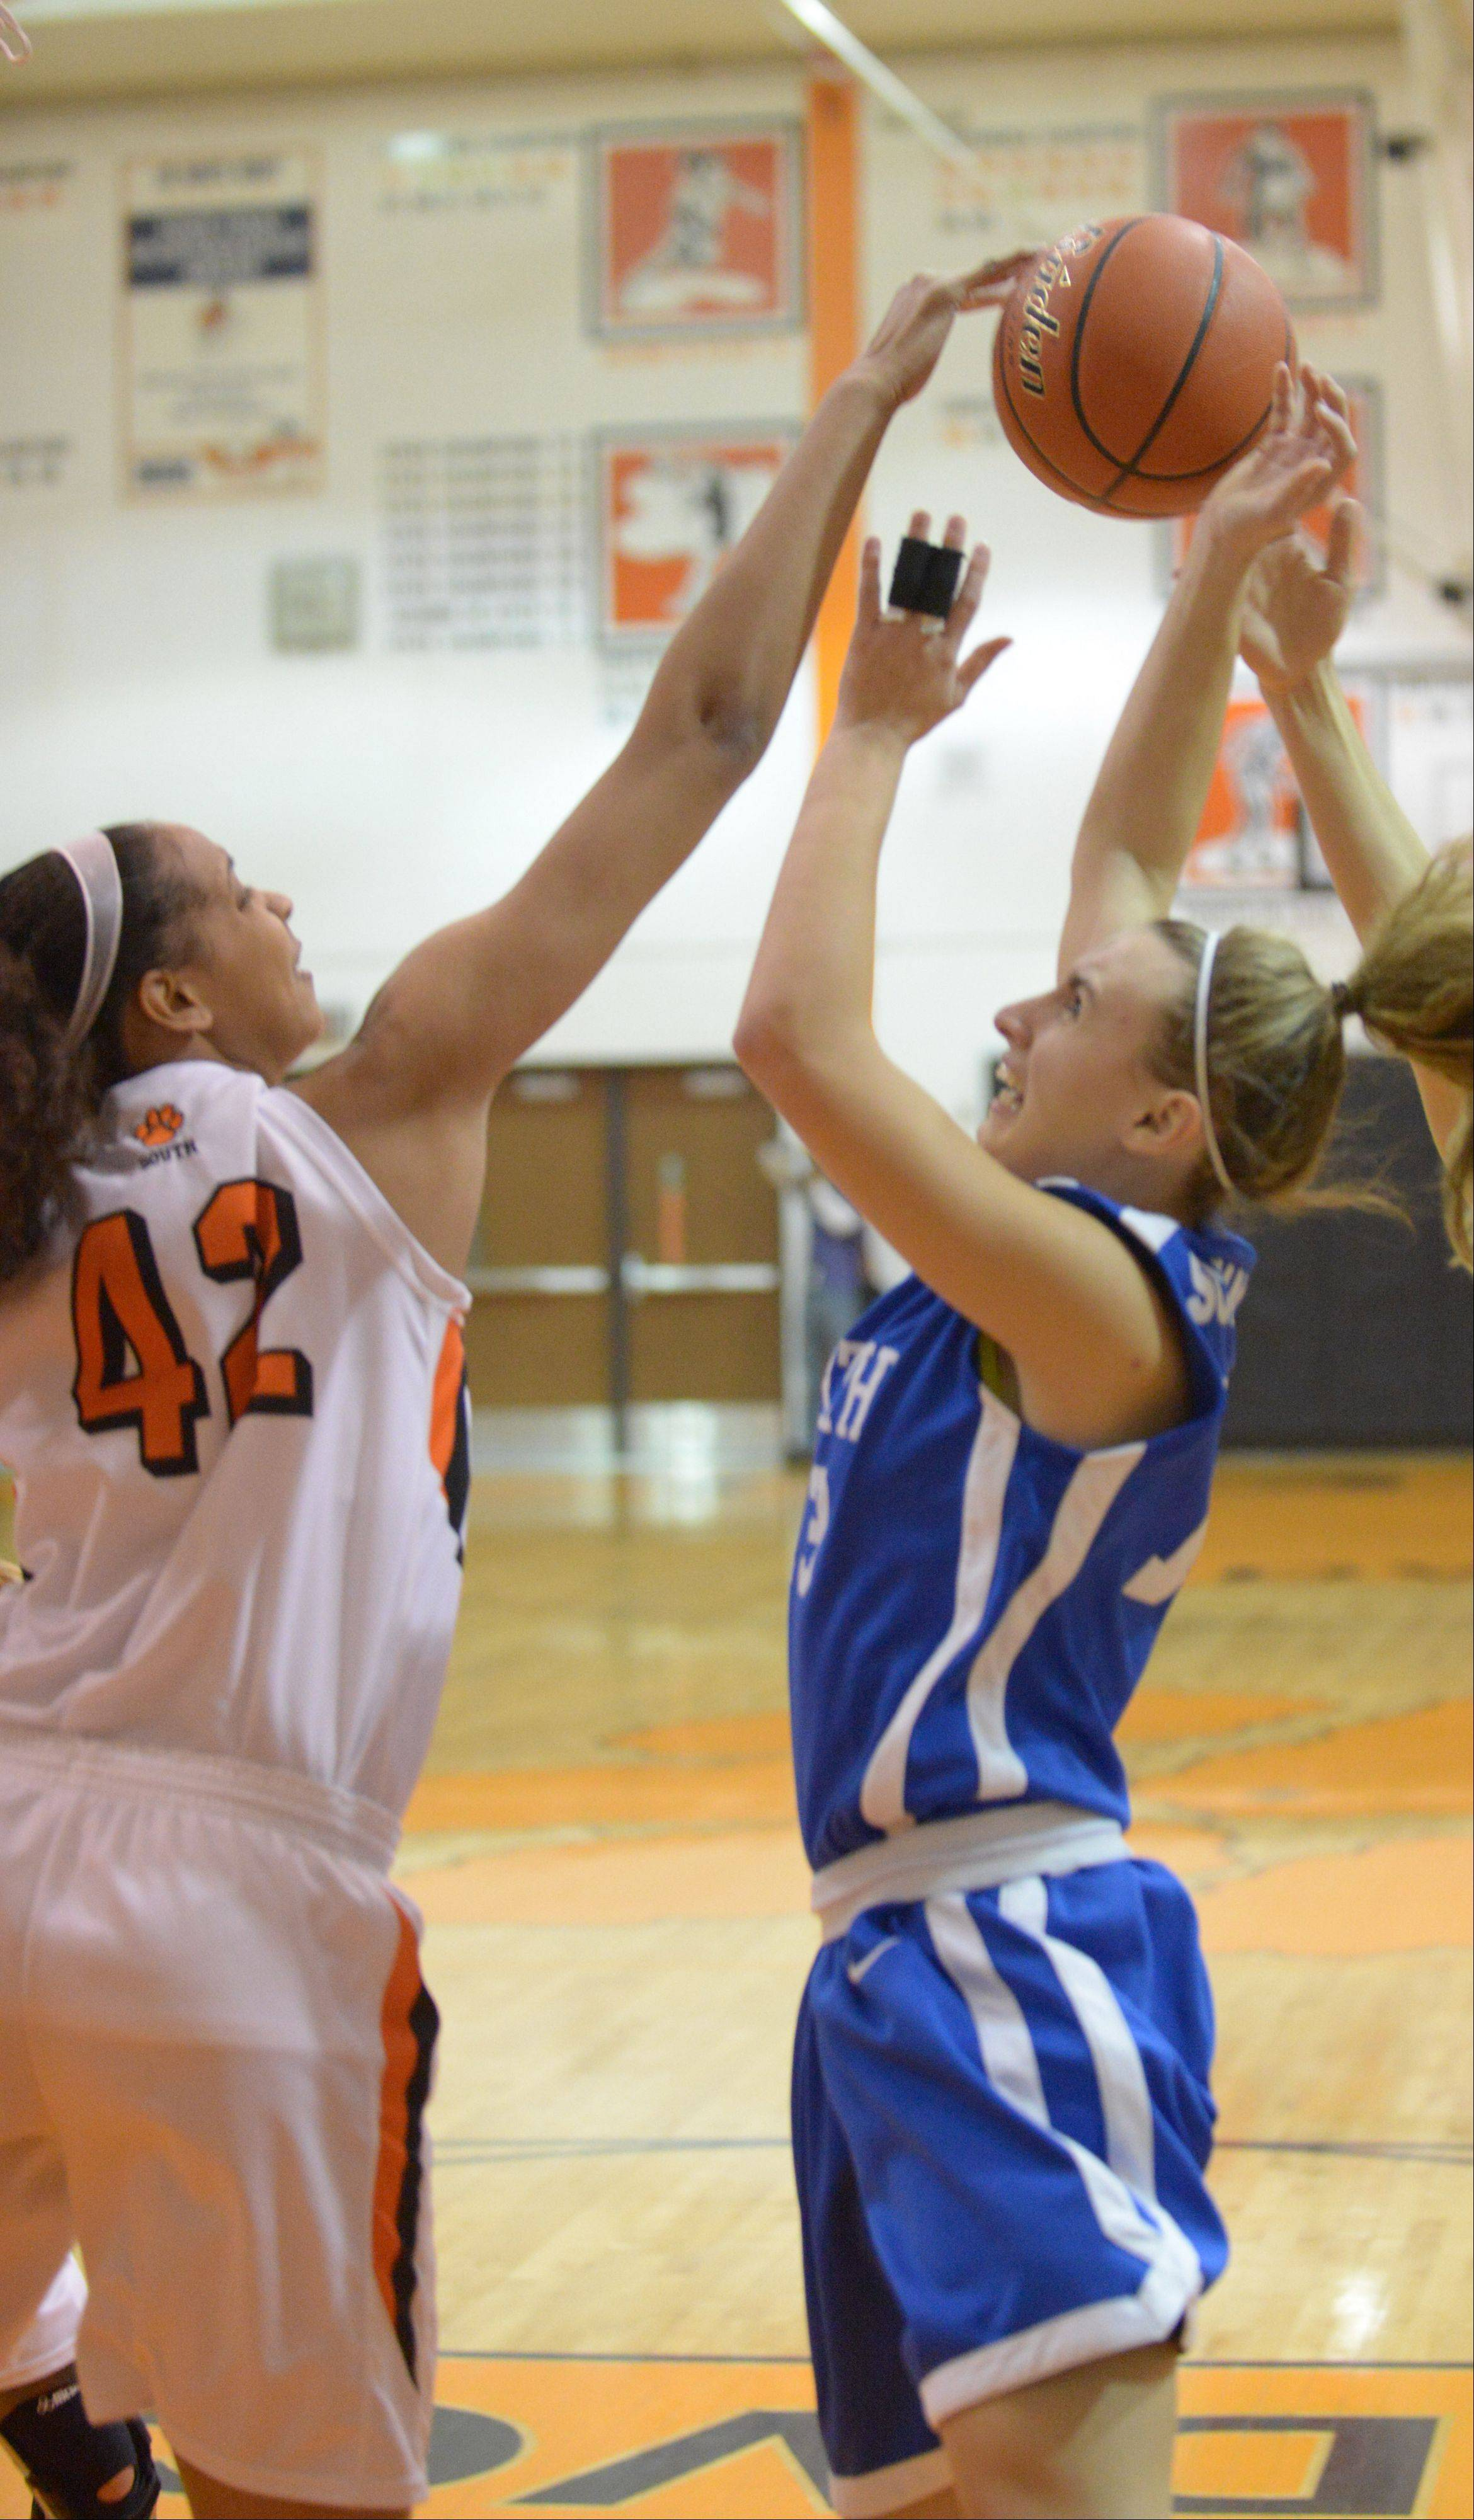 Diamond Thompson of Wheaton South,left, tries to block Brooke Schanowski of Wheaton North.